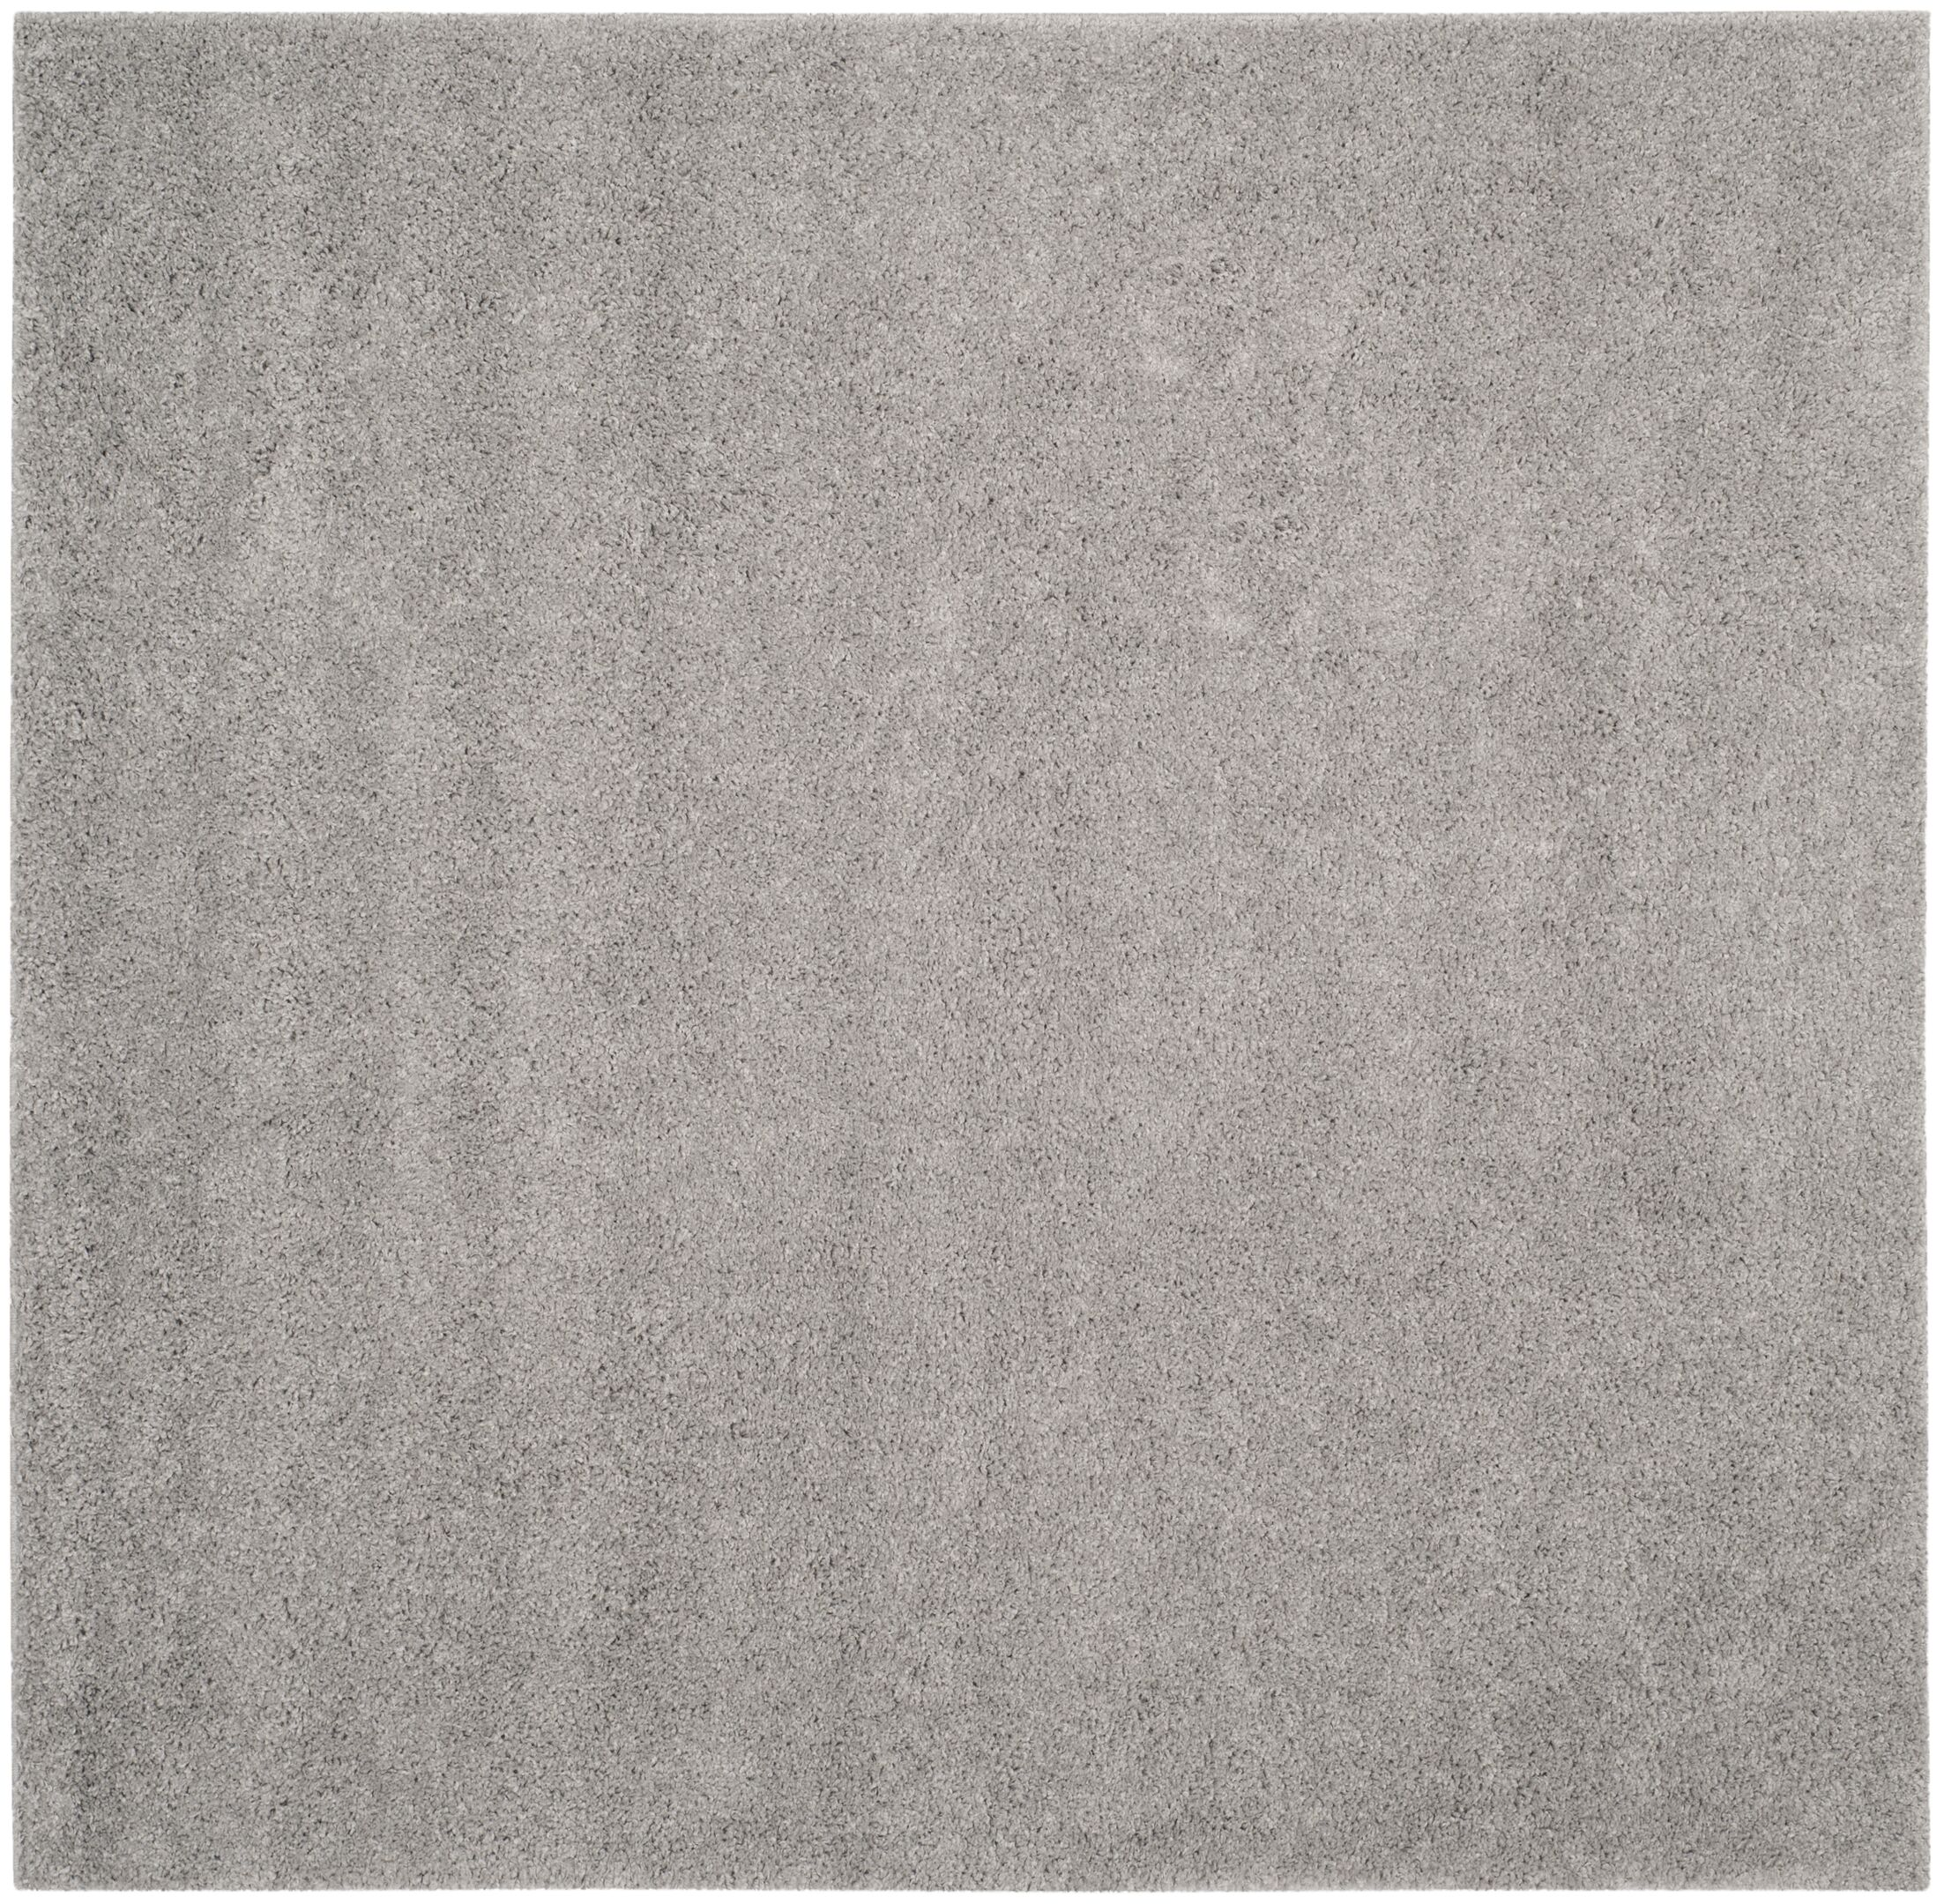 Curran Shag Light Gray Area Rug Rug Size: Square 6'7